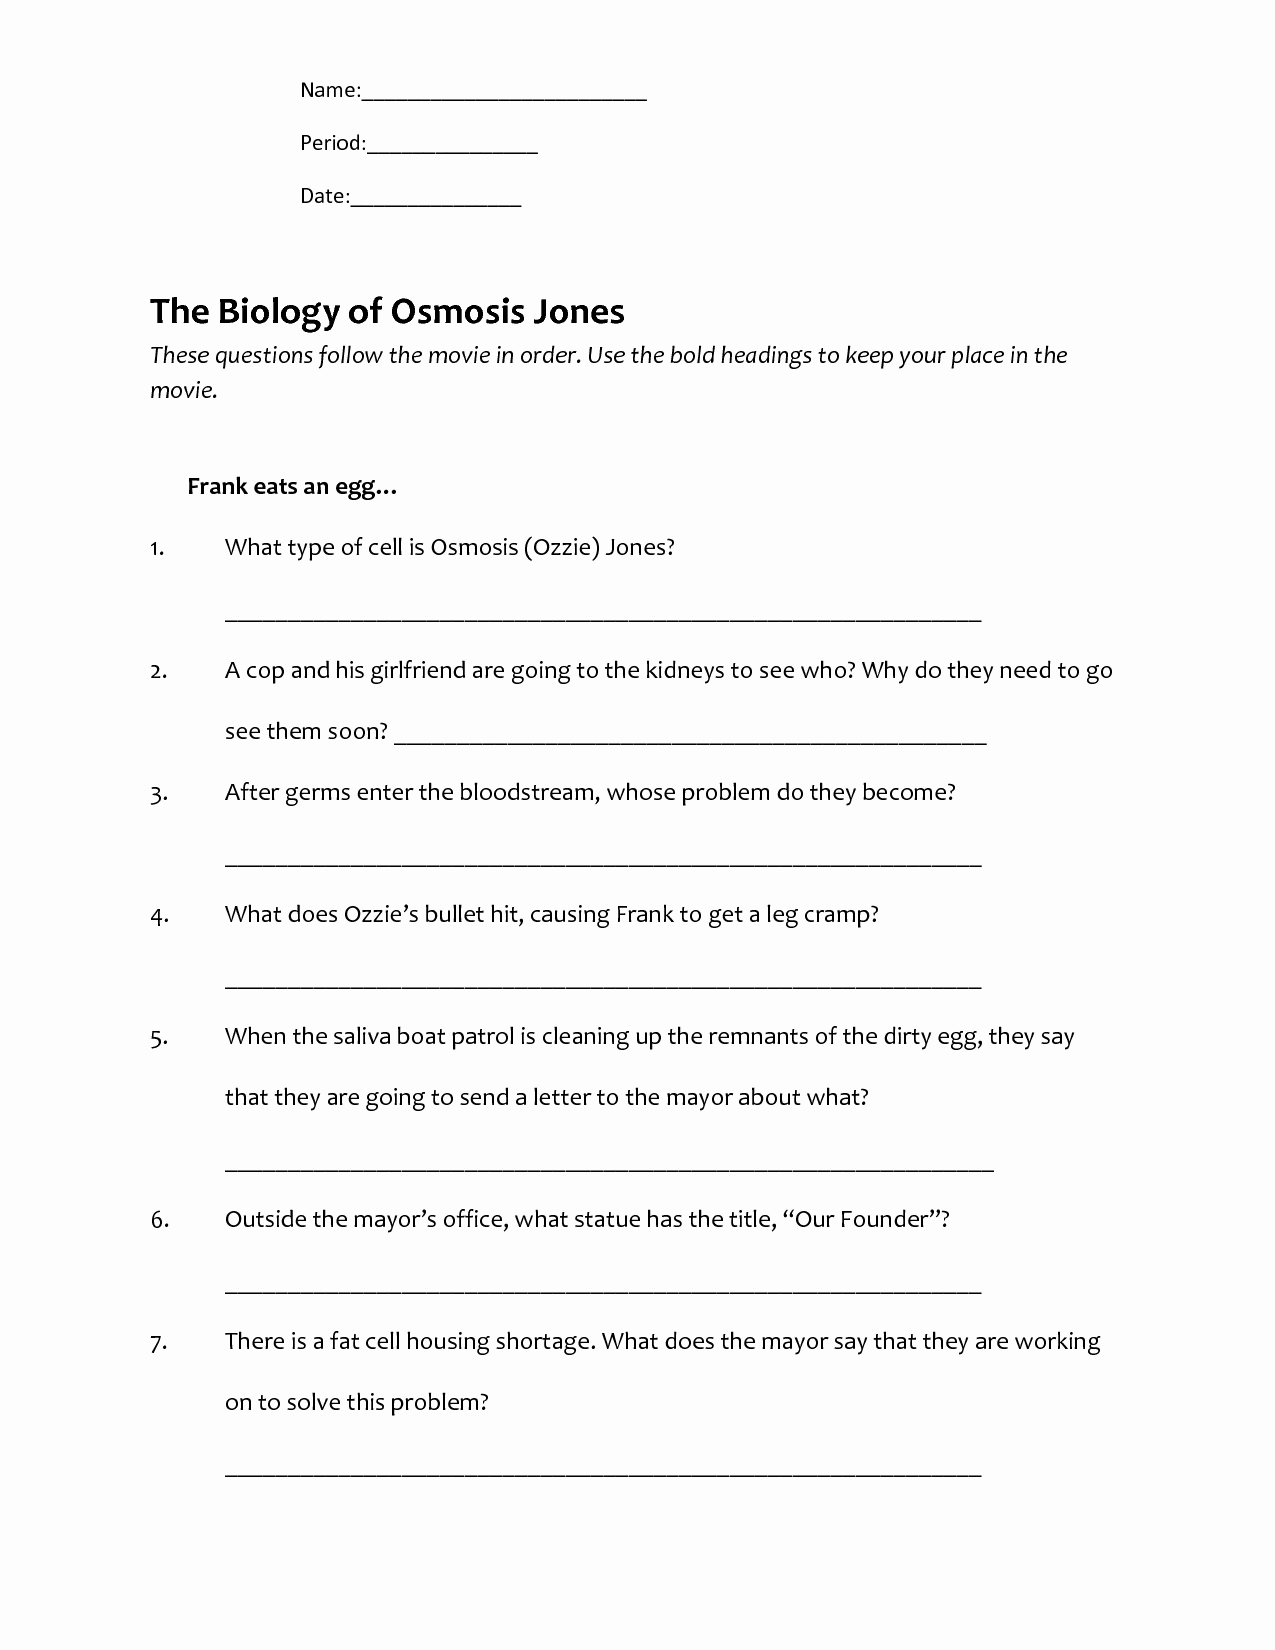 Osmosis Jones Video Worksheet Answers Inspirational 48 tonicity and Osmosis Worksheet 85 Nacl Record the